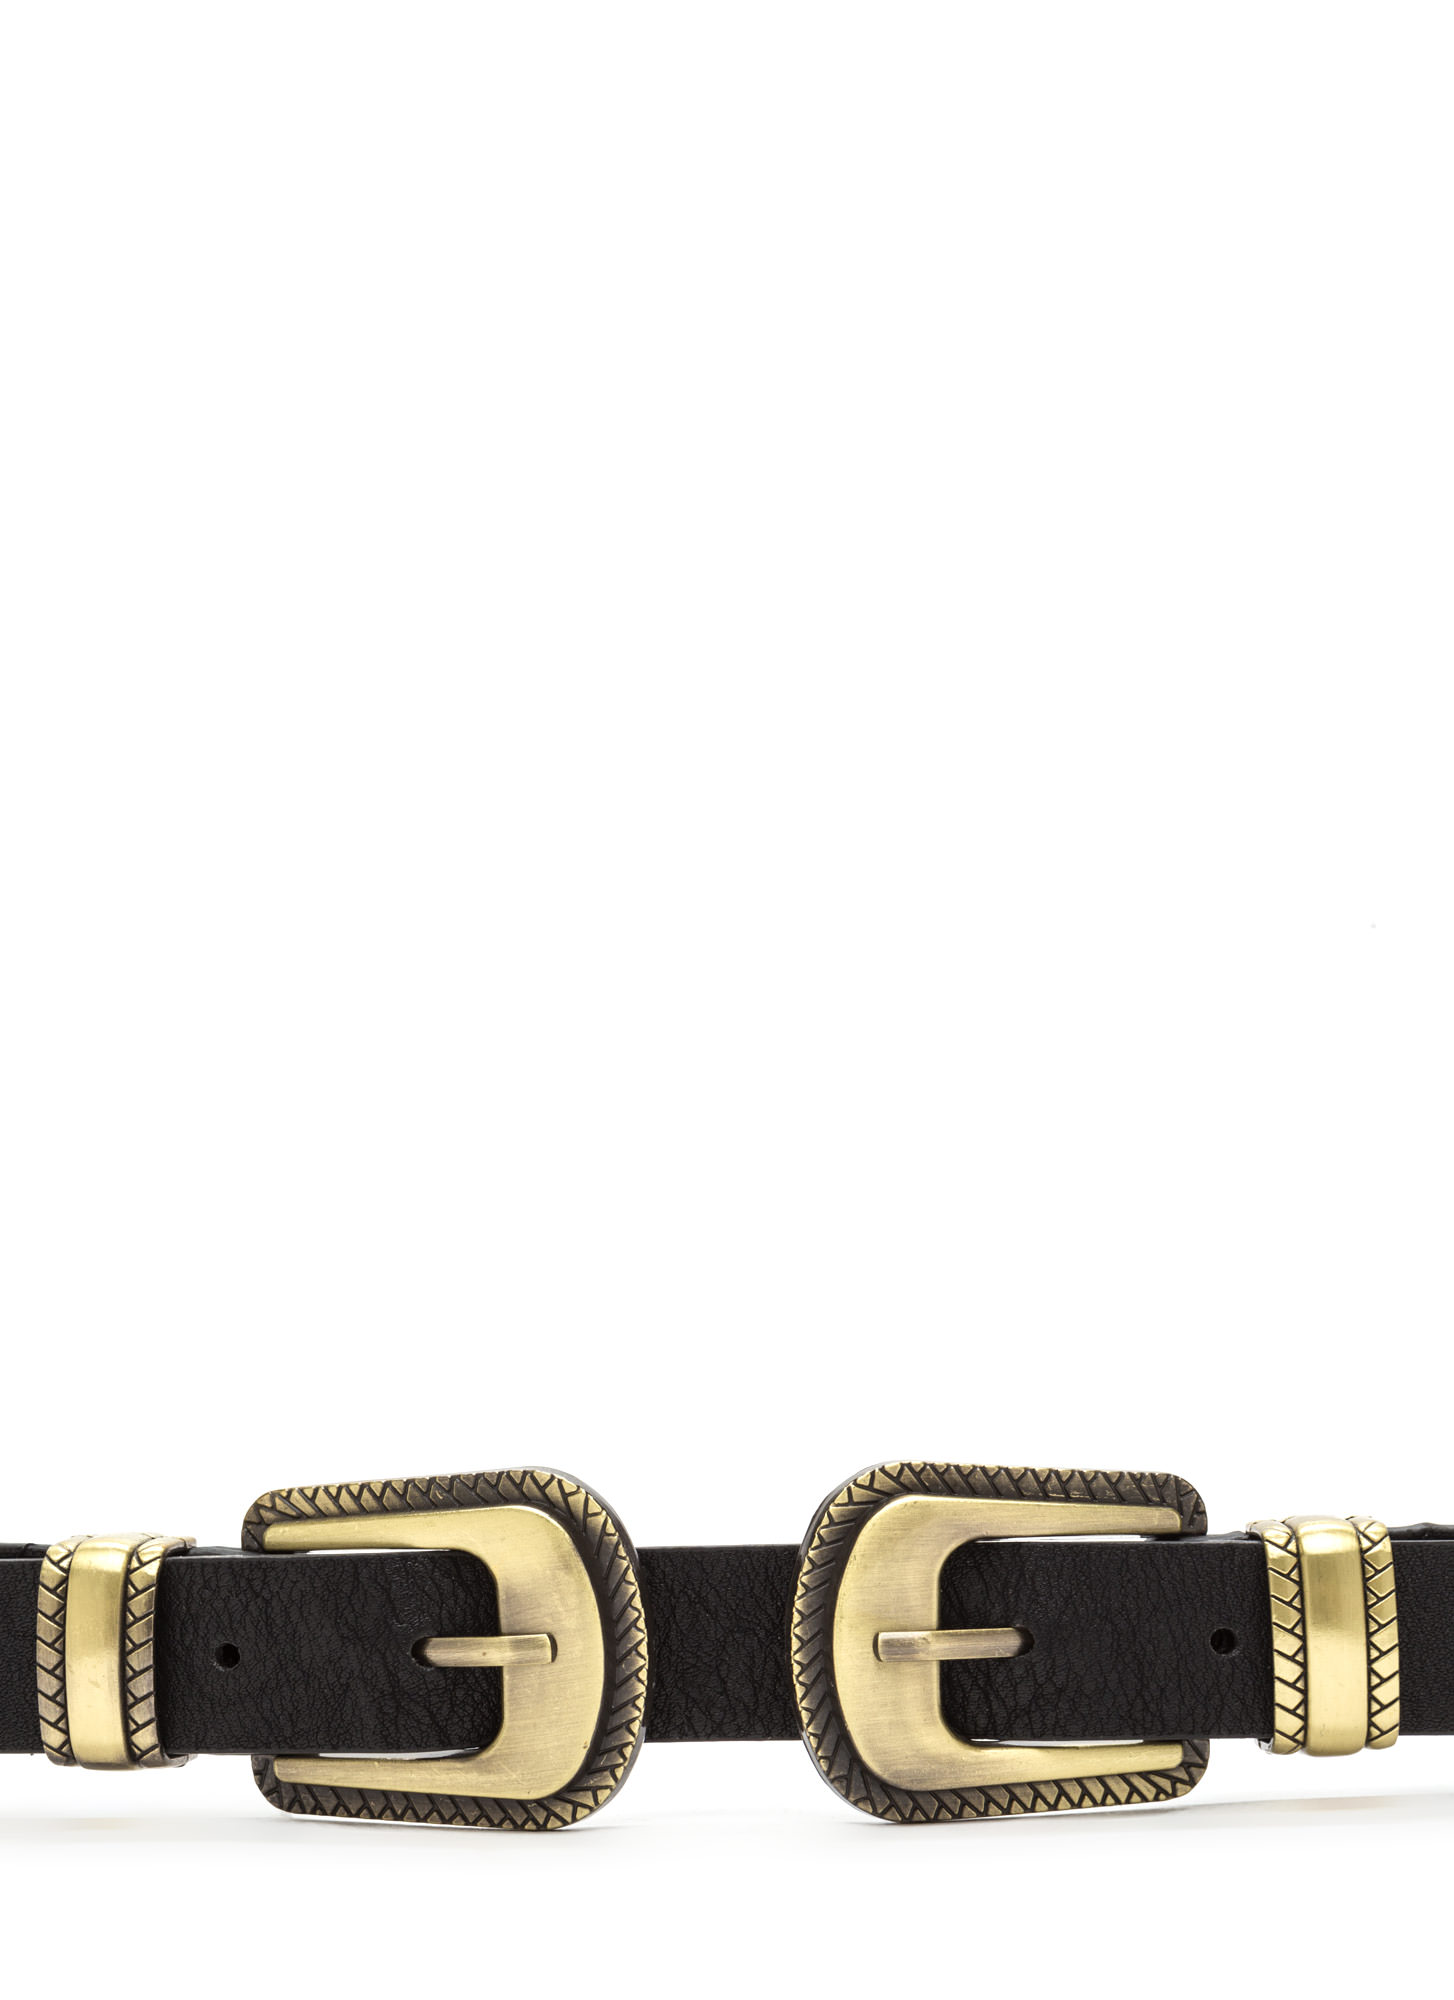 Quick Draw Stretchy Double Buckle Belt DKGOLD